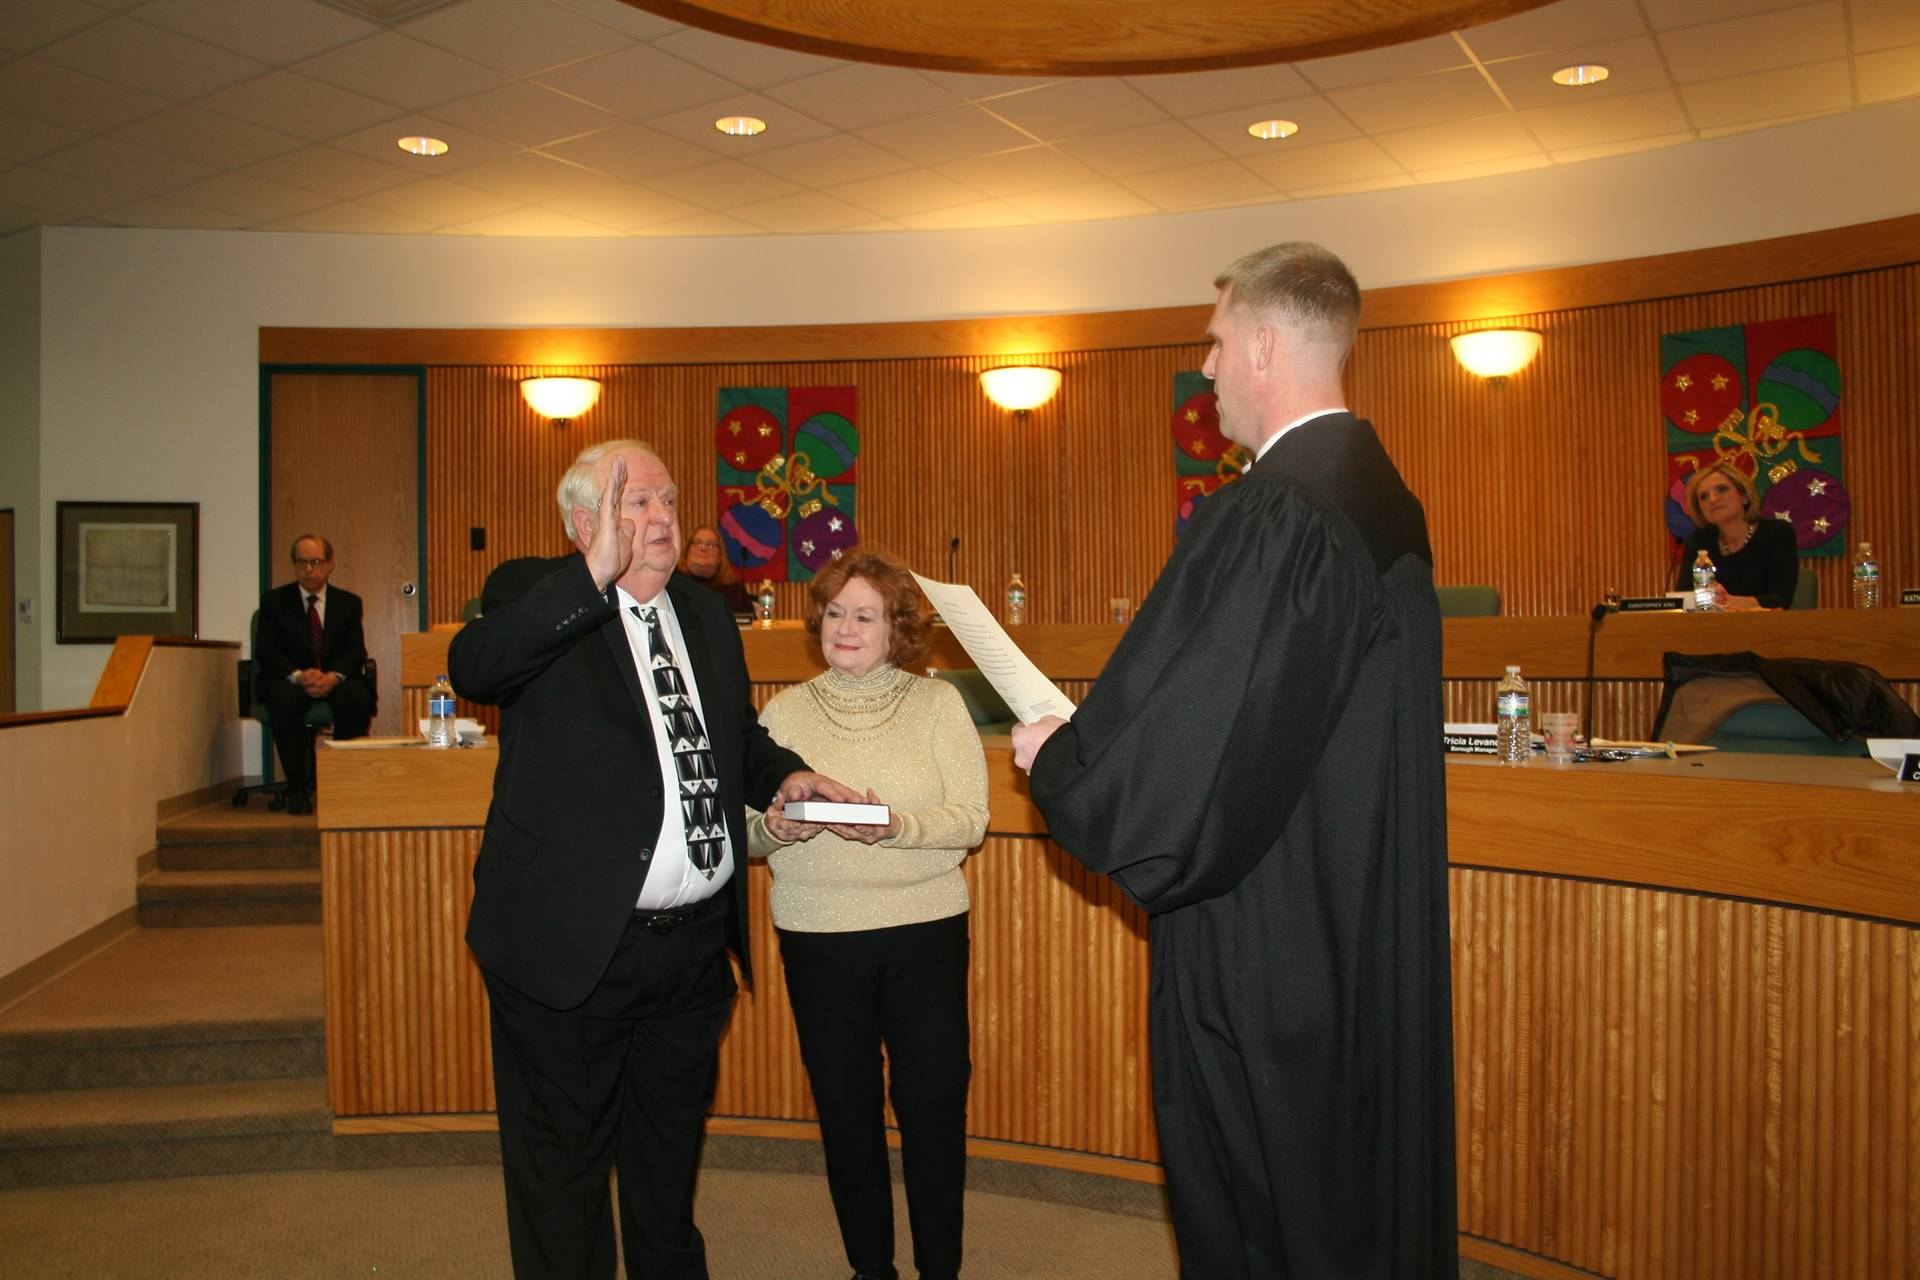 Francis Sockman is Sworn in for second term in Council